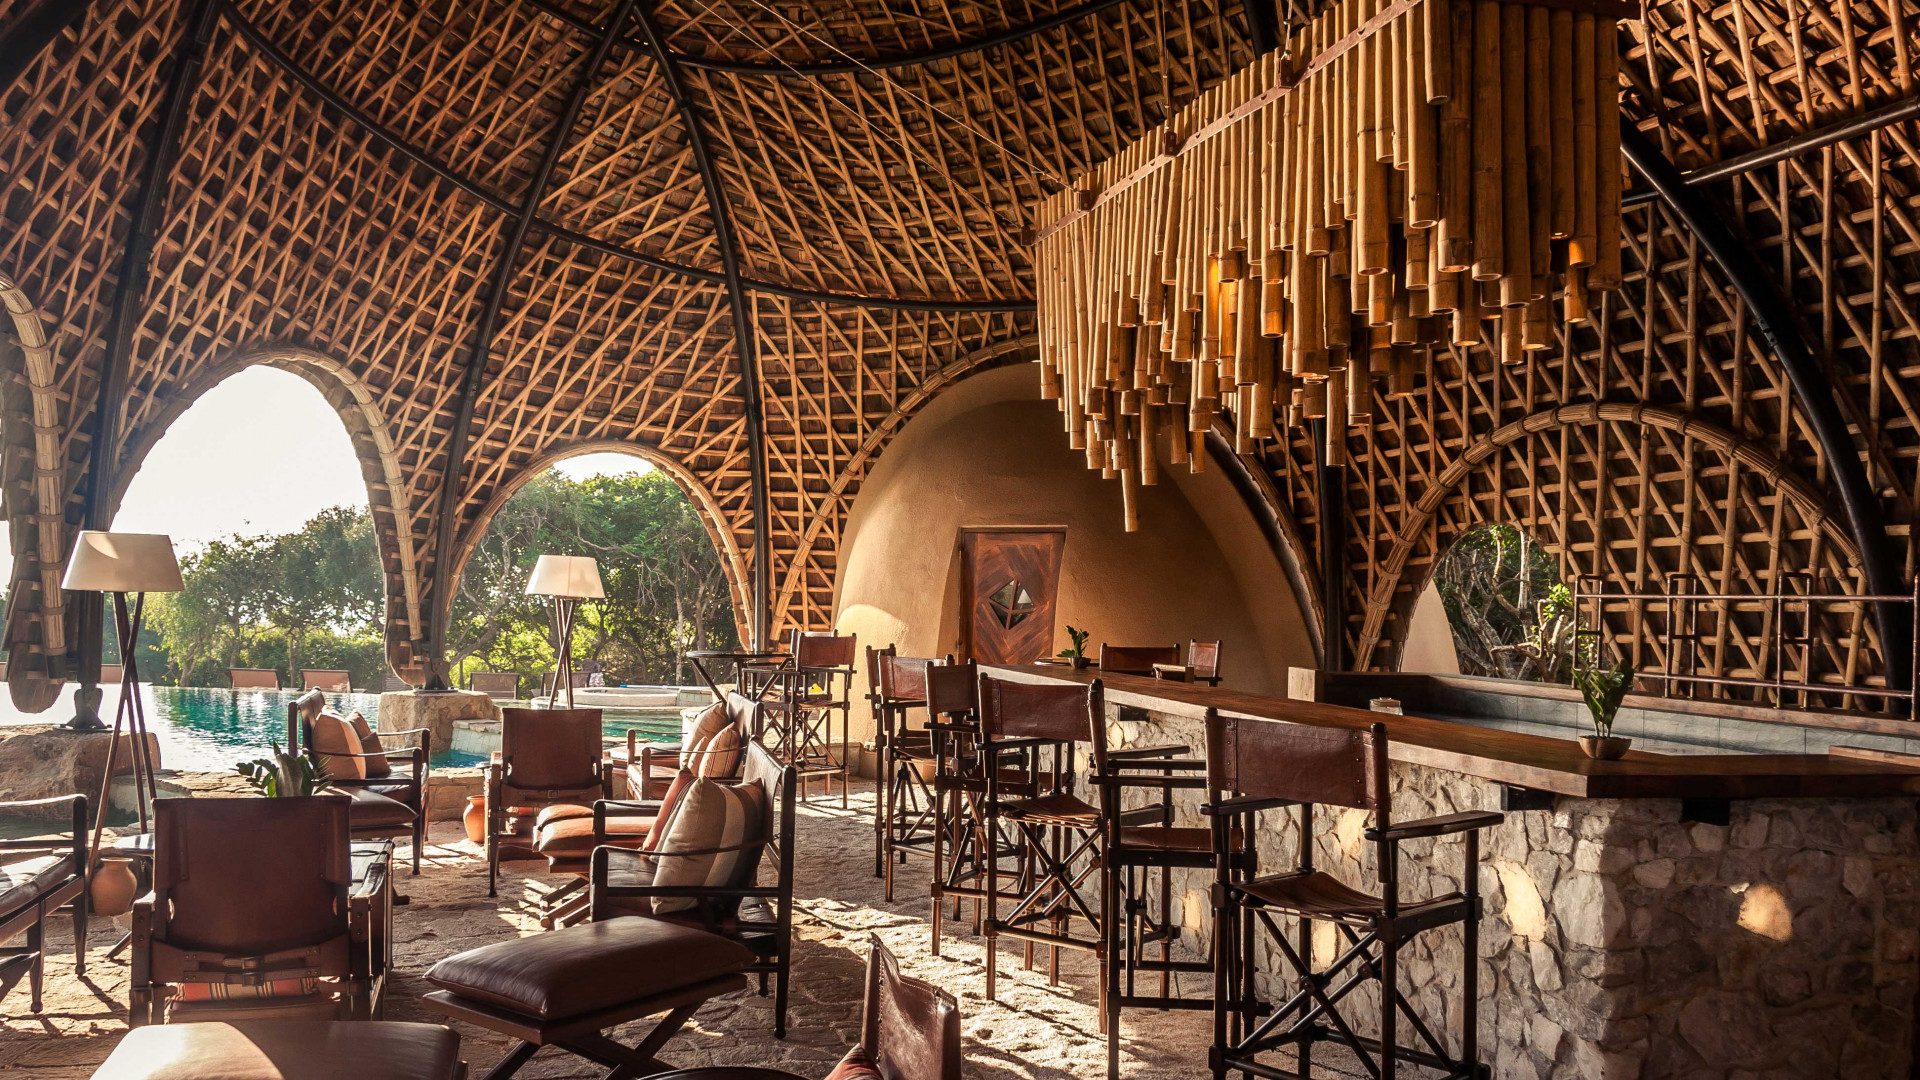 The dining room at Wild Coast Tented Lodge